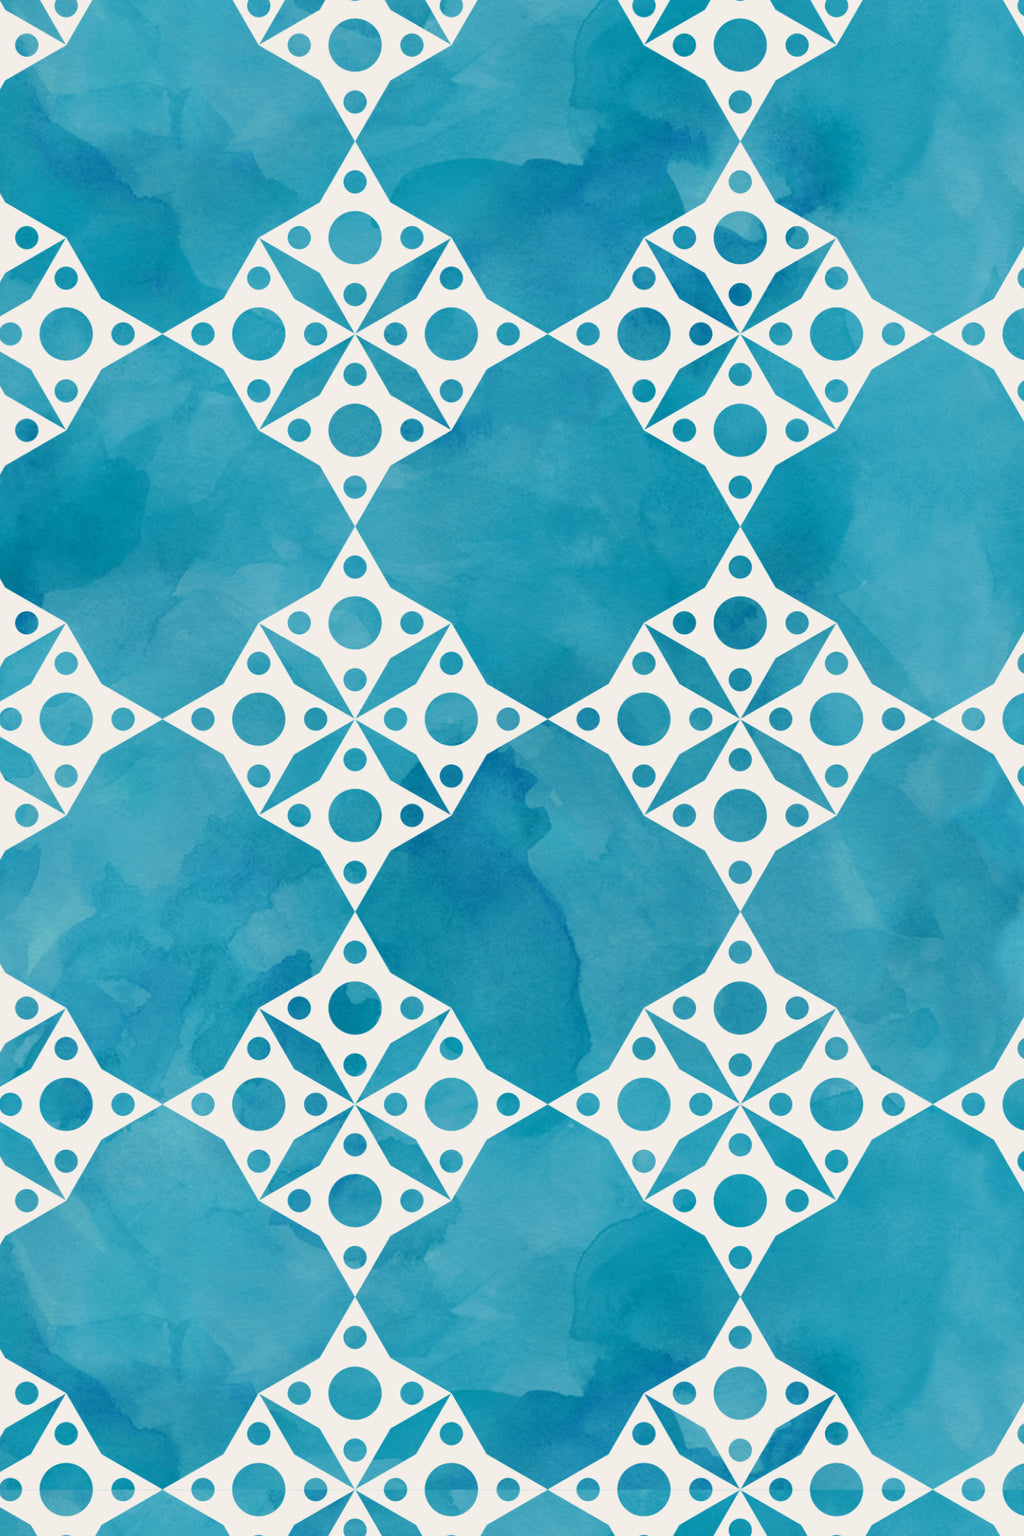 Cornwall Fabric, Color Teal